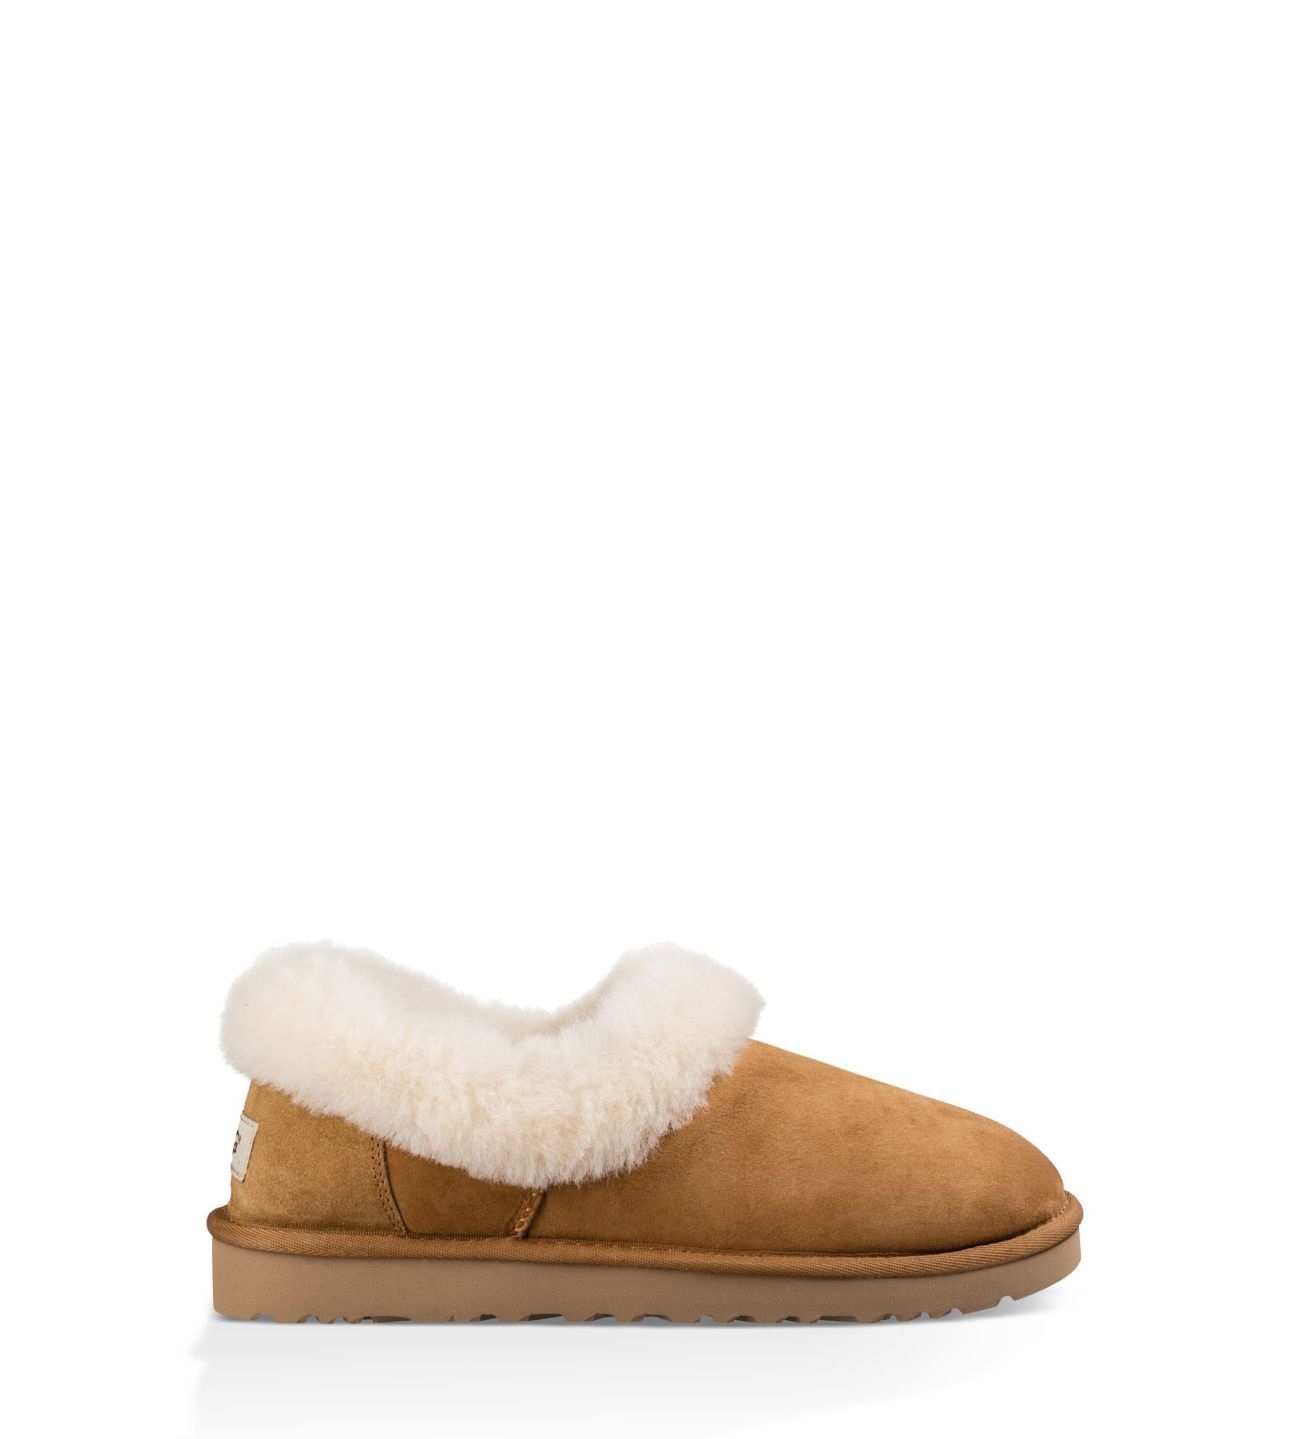 79369f2ca04 Shop our collection of women's sheepskin slippers including the Nita ...